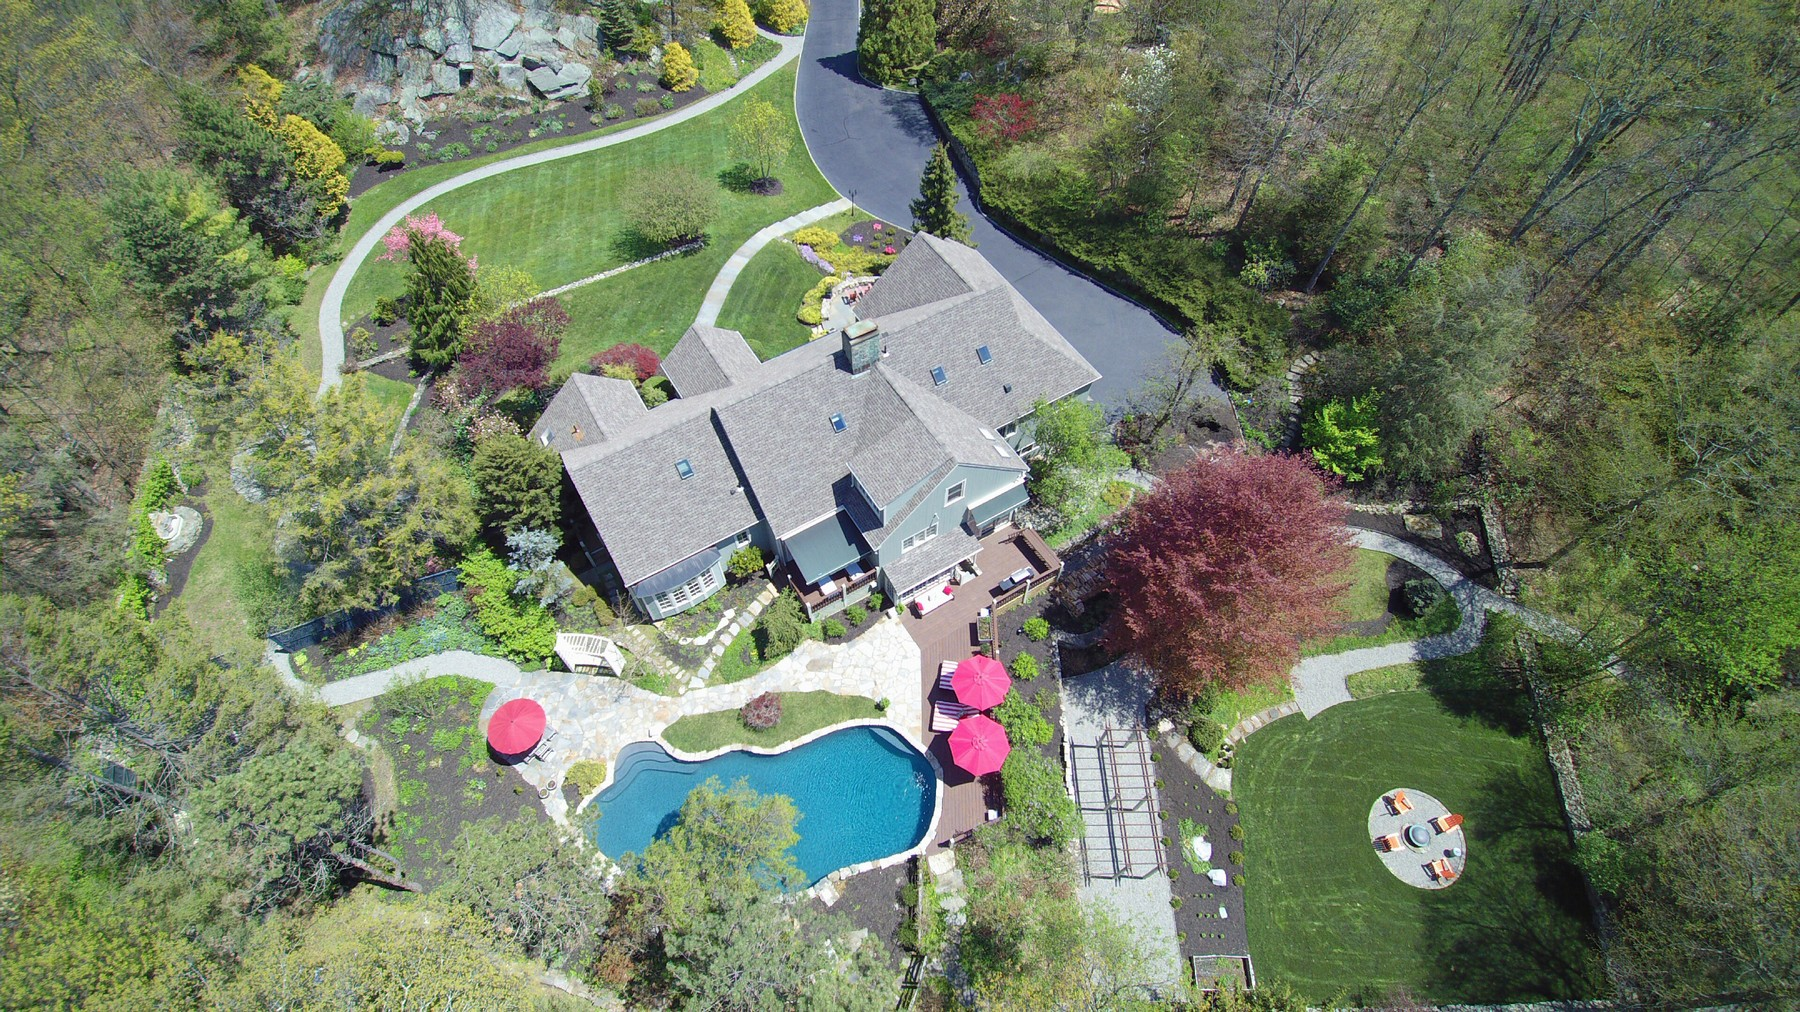 Single Family Home for Sale at One of a Kind Retreat 167 Peaceable Hill Road Ridgefield, Connecticut, 06877 United States